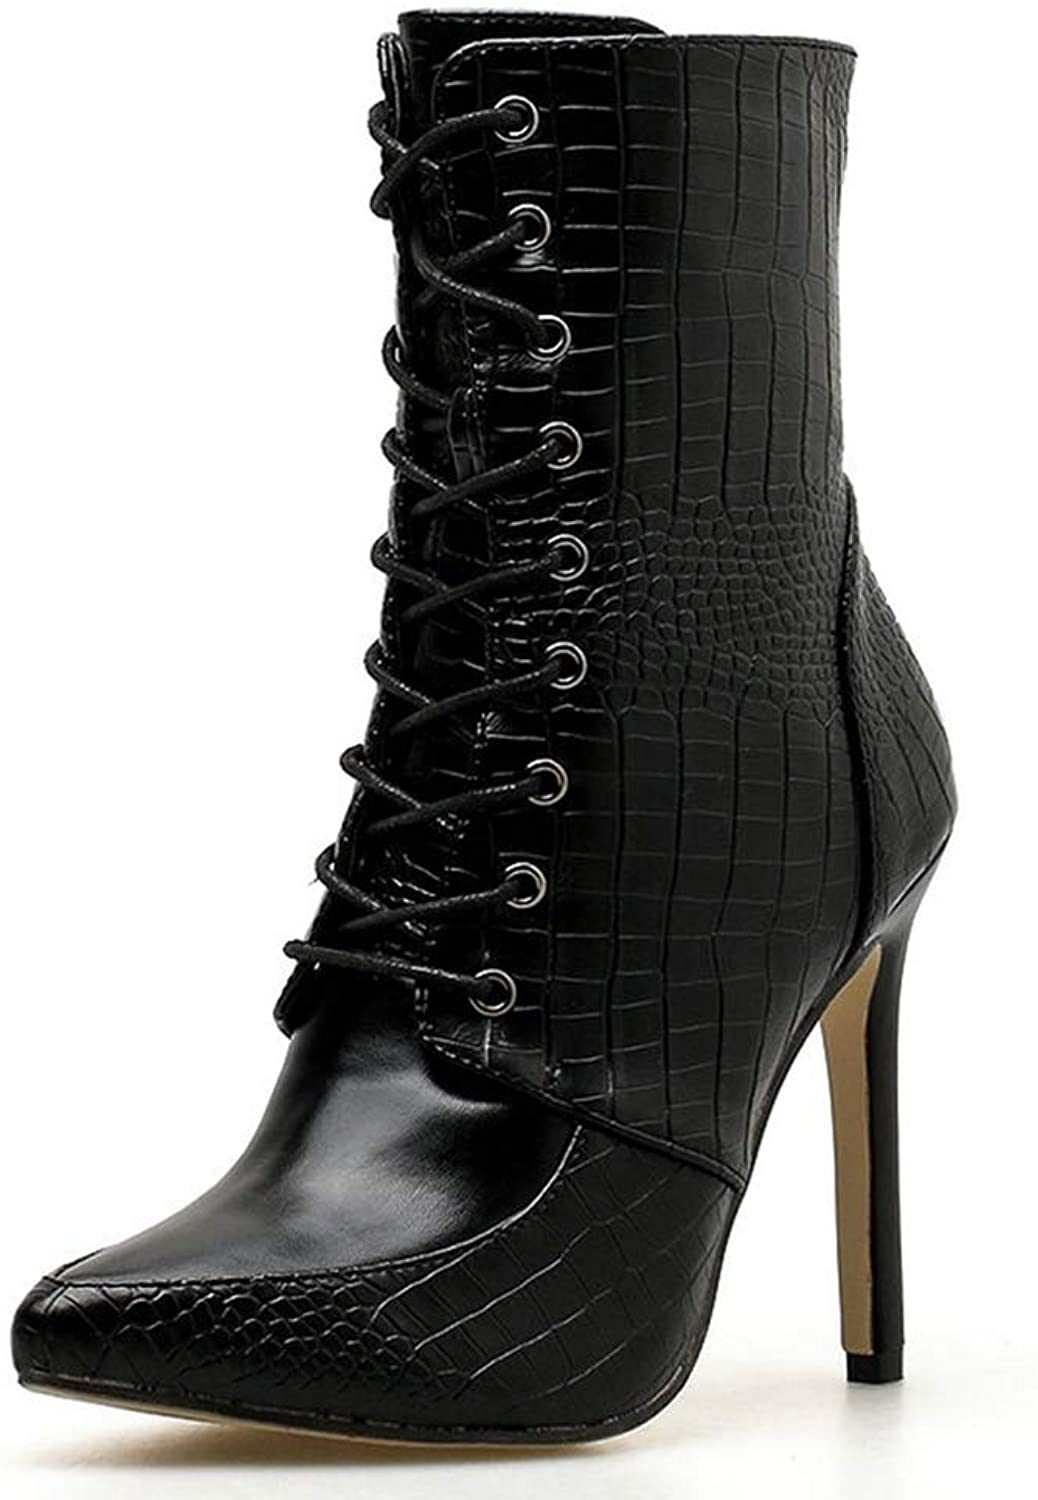 GIY Women Sexy Pointed Toe Leather Ankle Boots Ladies Serpentine Side Zipper High Heels Ankle Boots Knight Short Boots